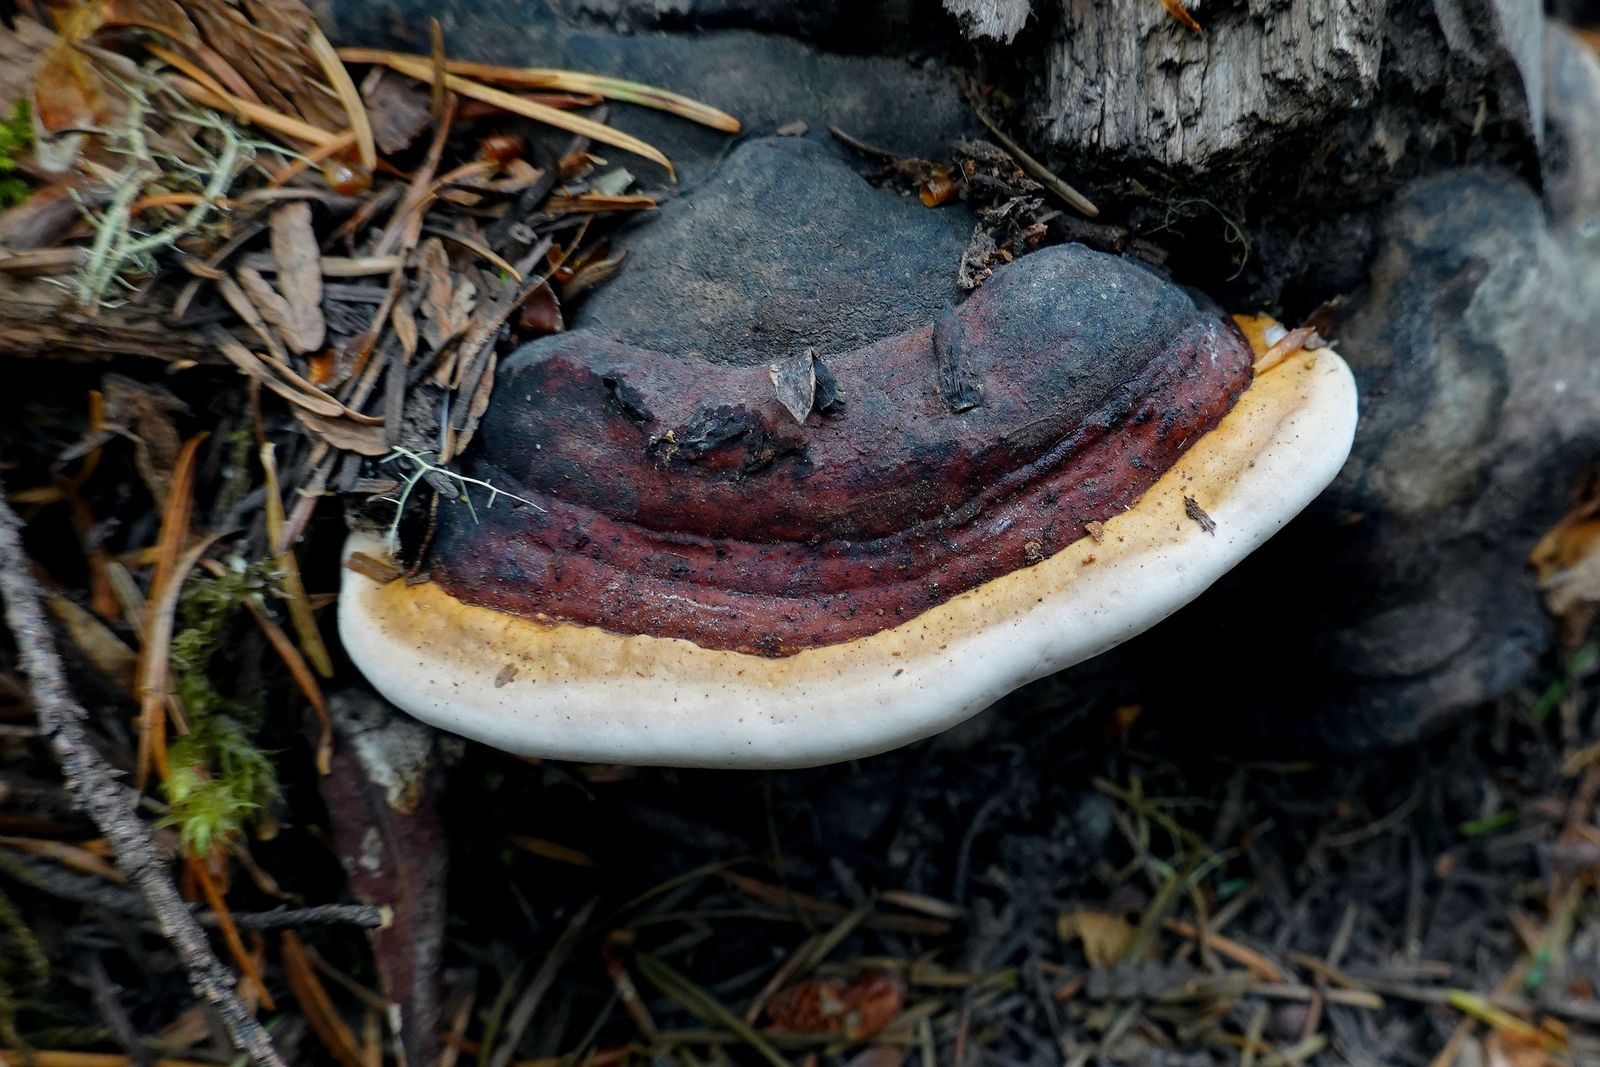 Bracket and mushroom fungi add color to the green forest